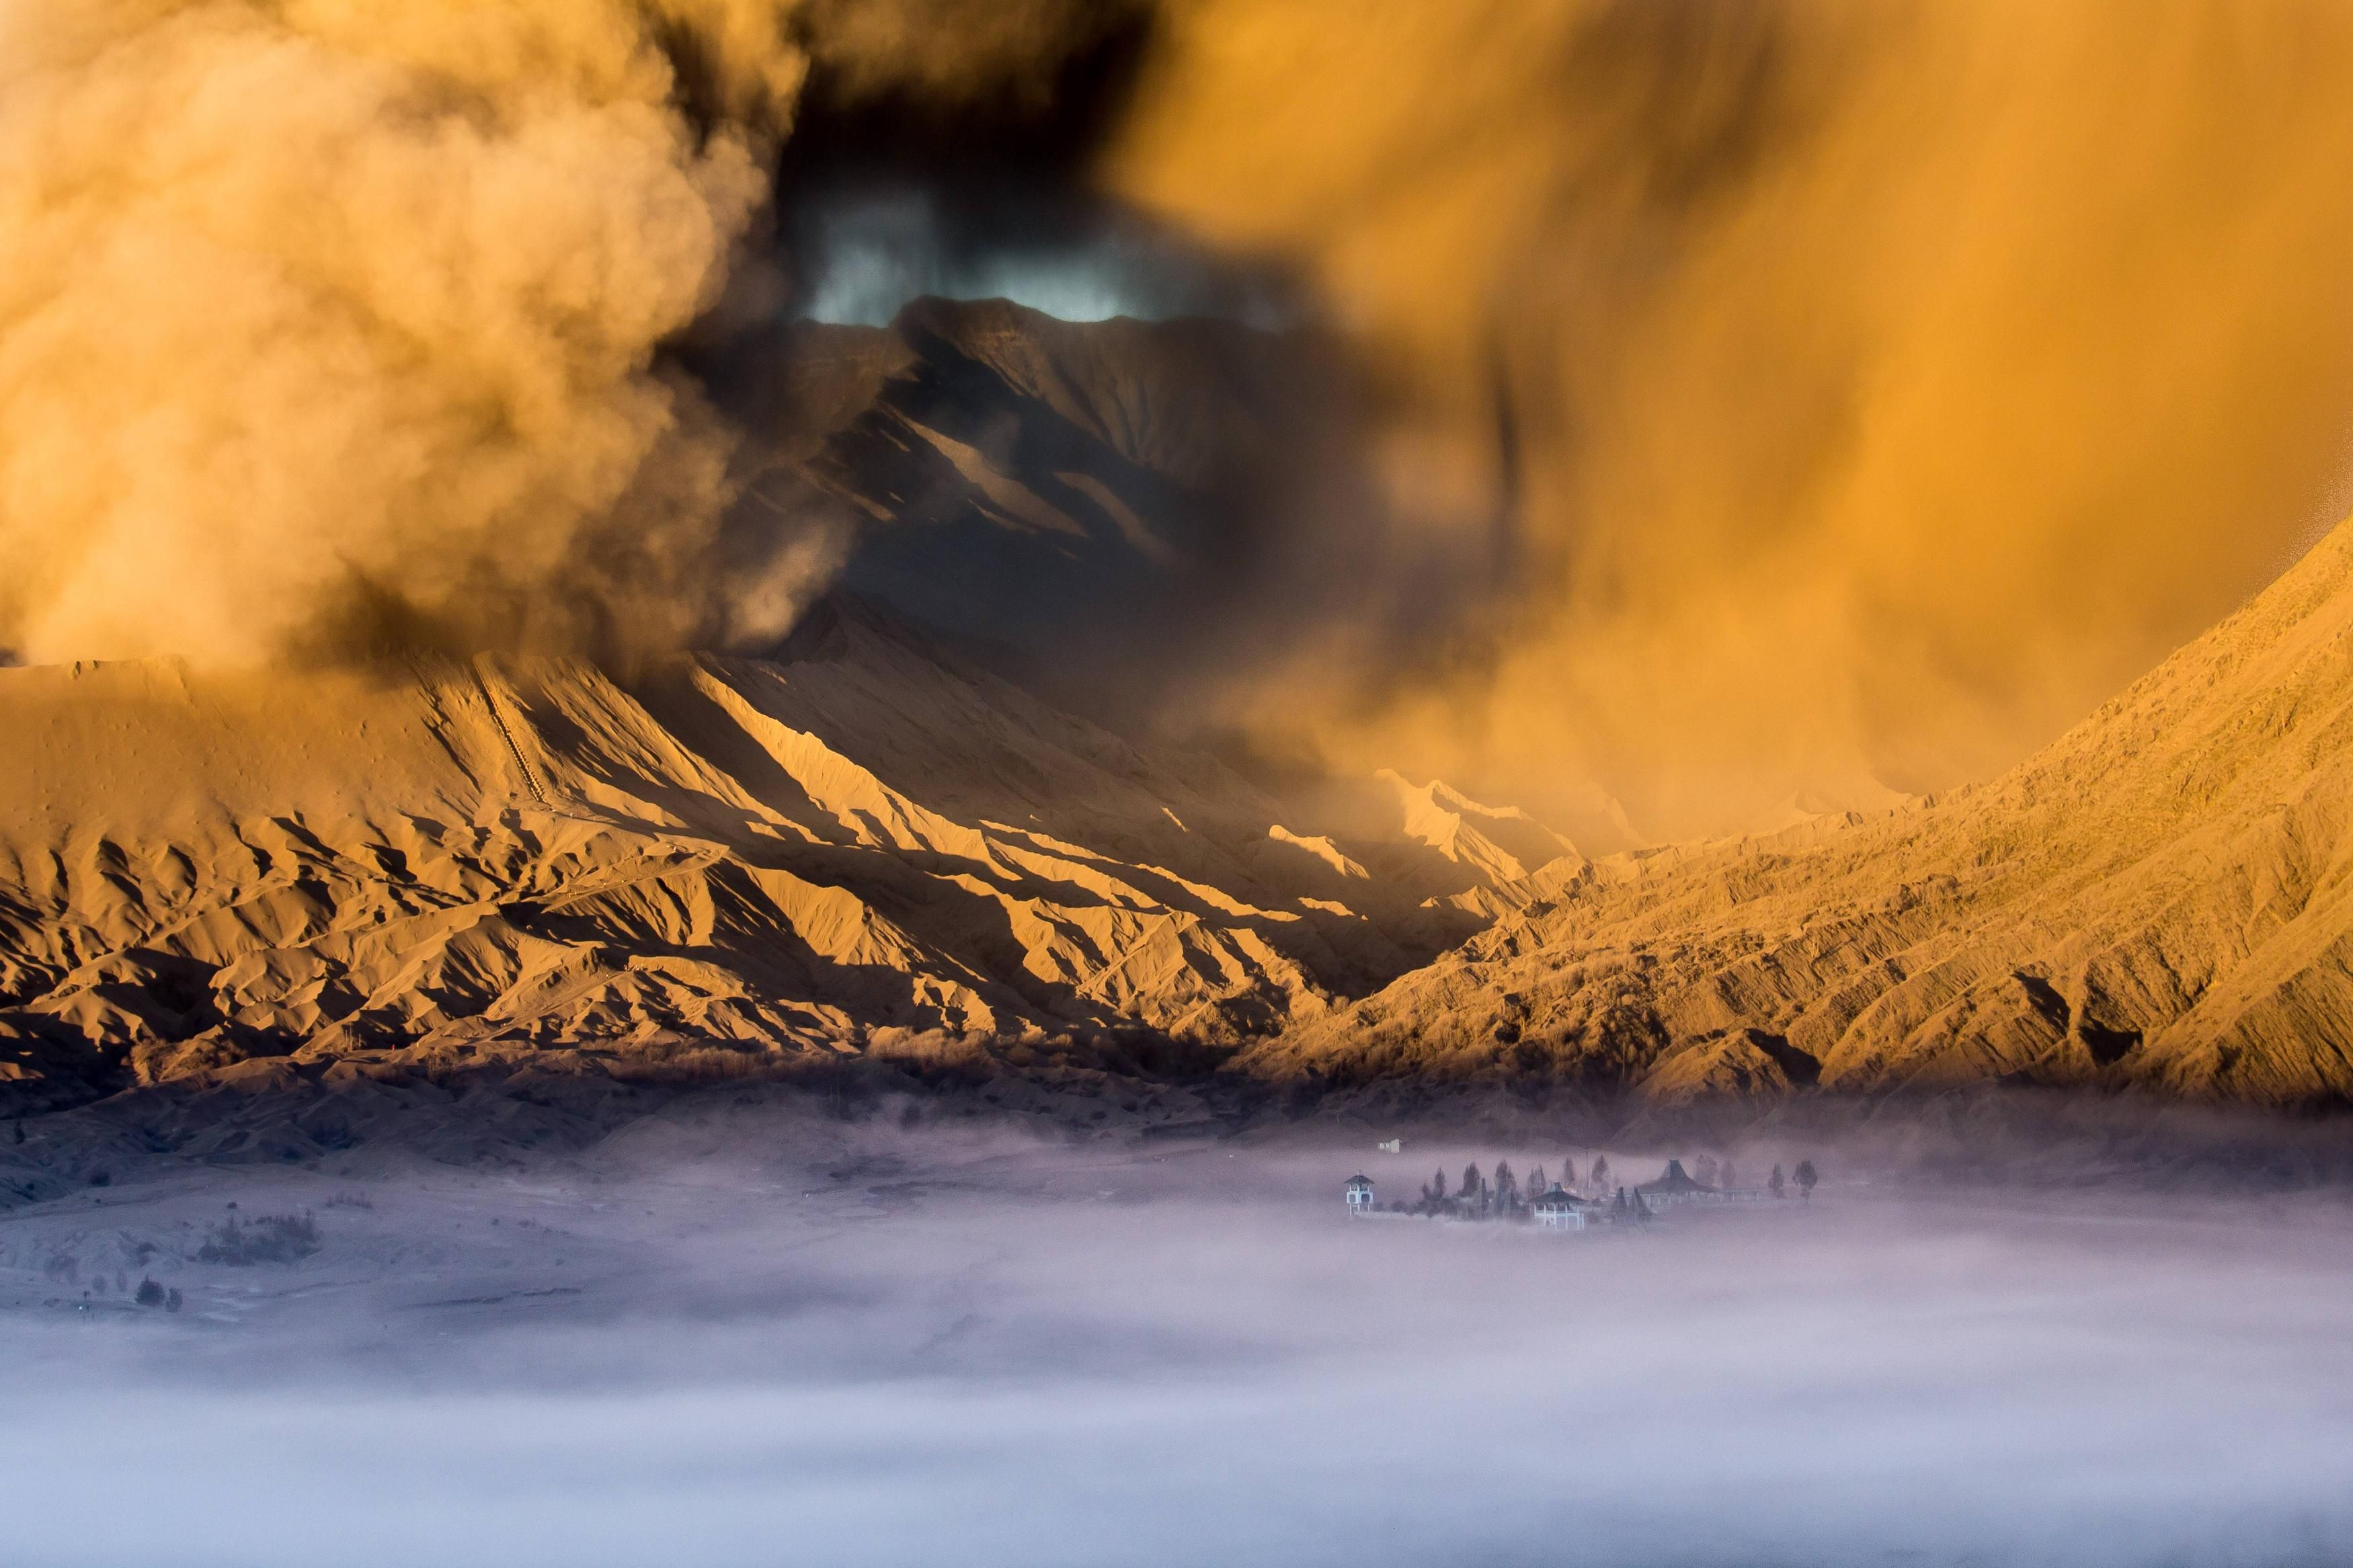 National Geographic Best Photos in 2013